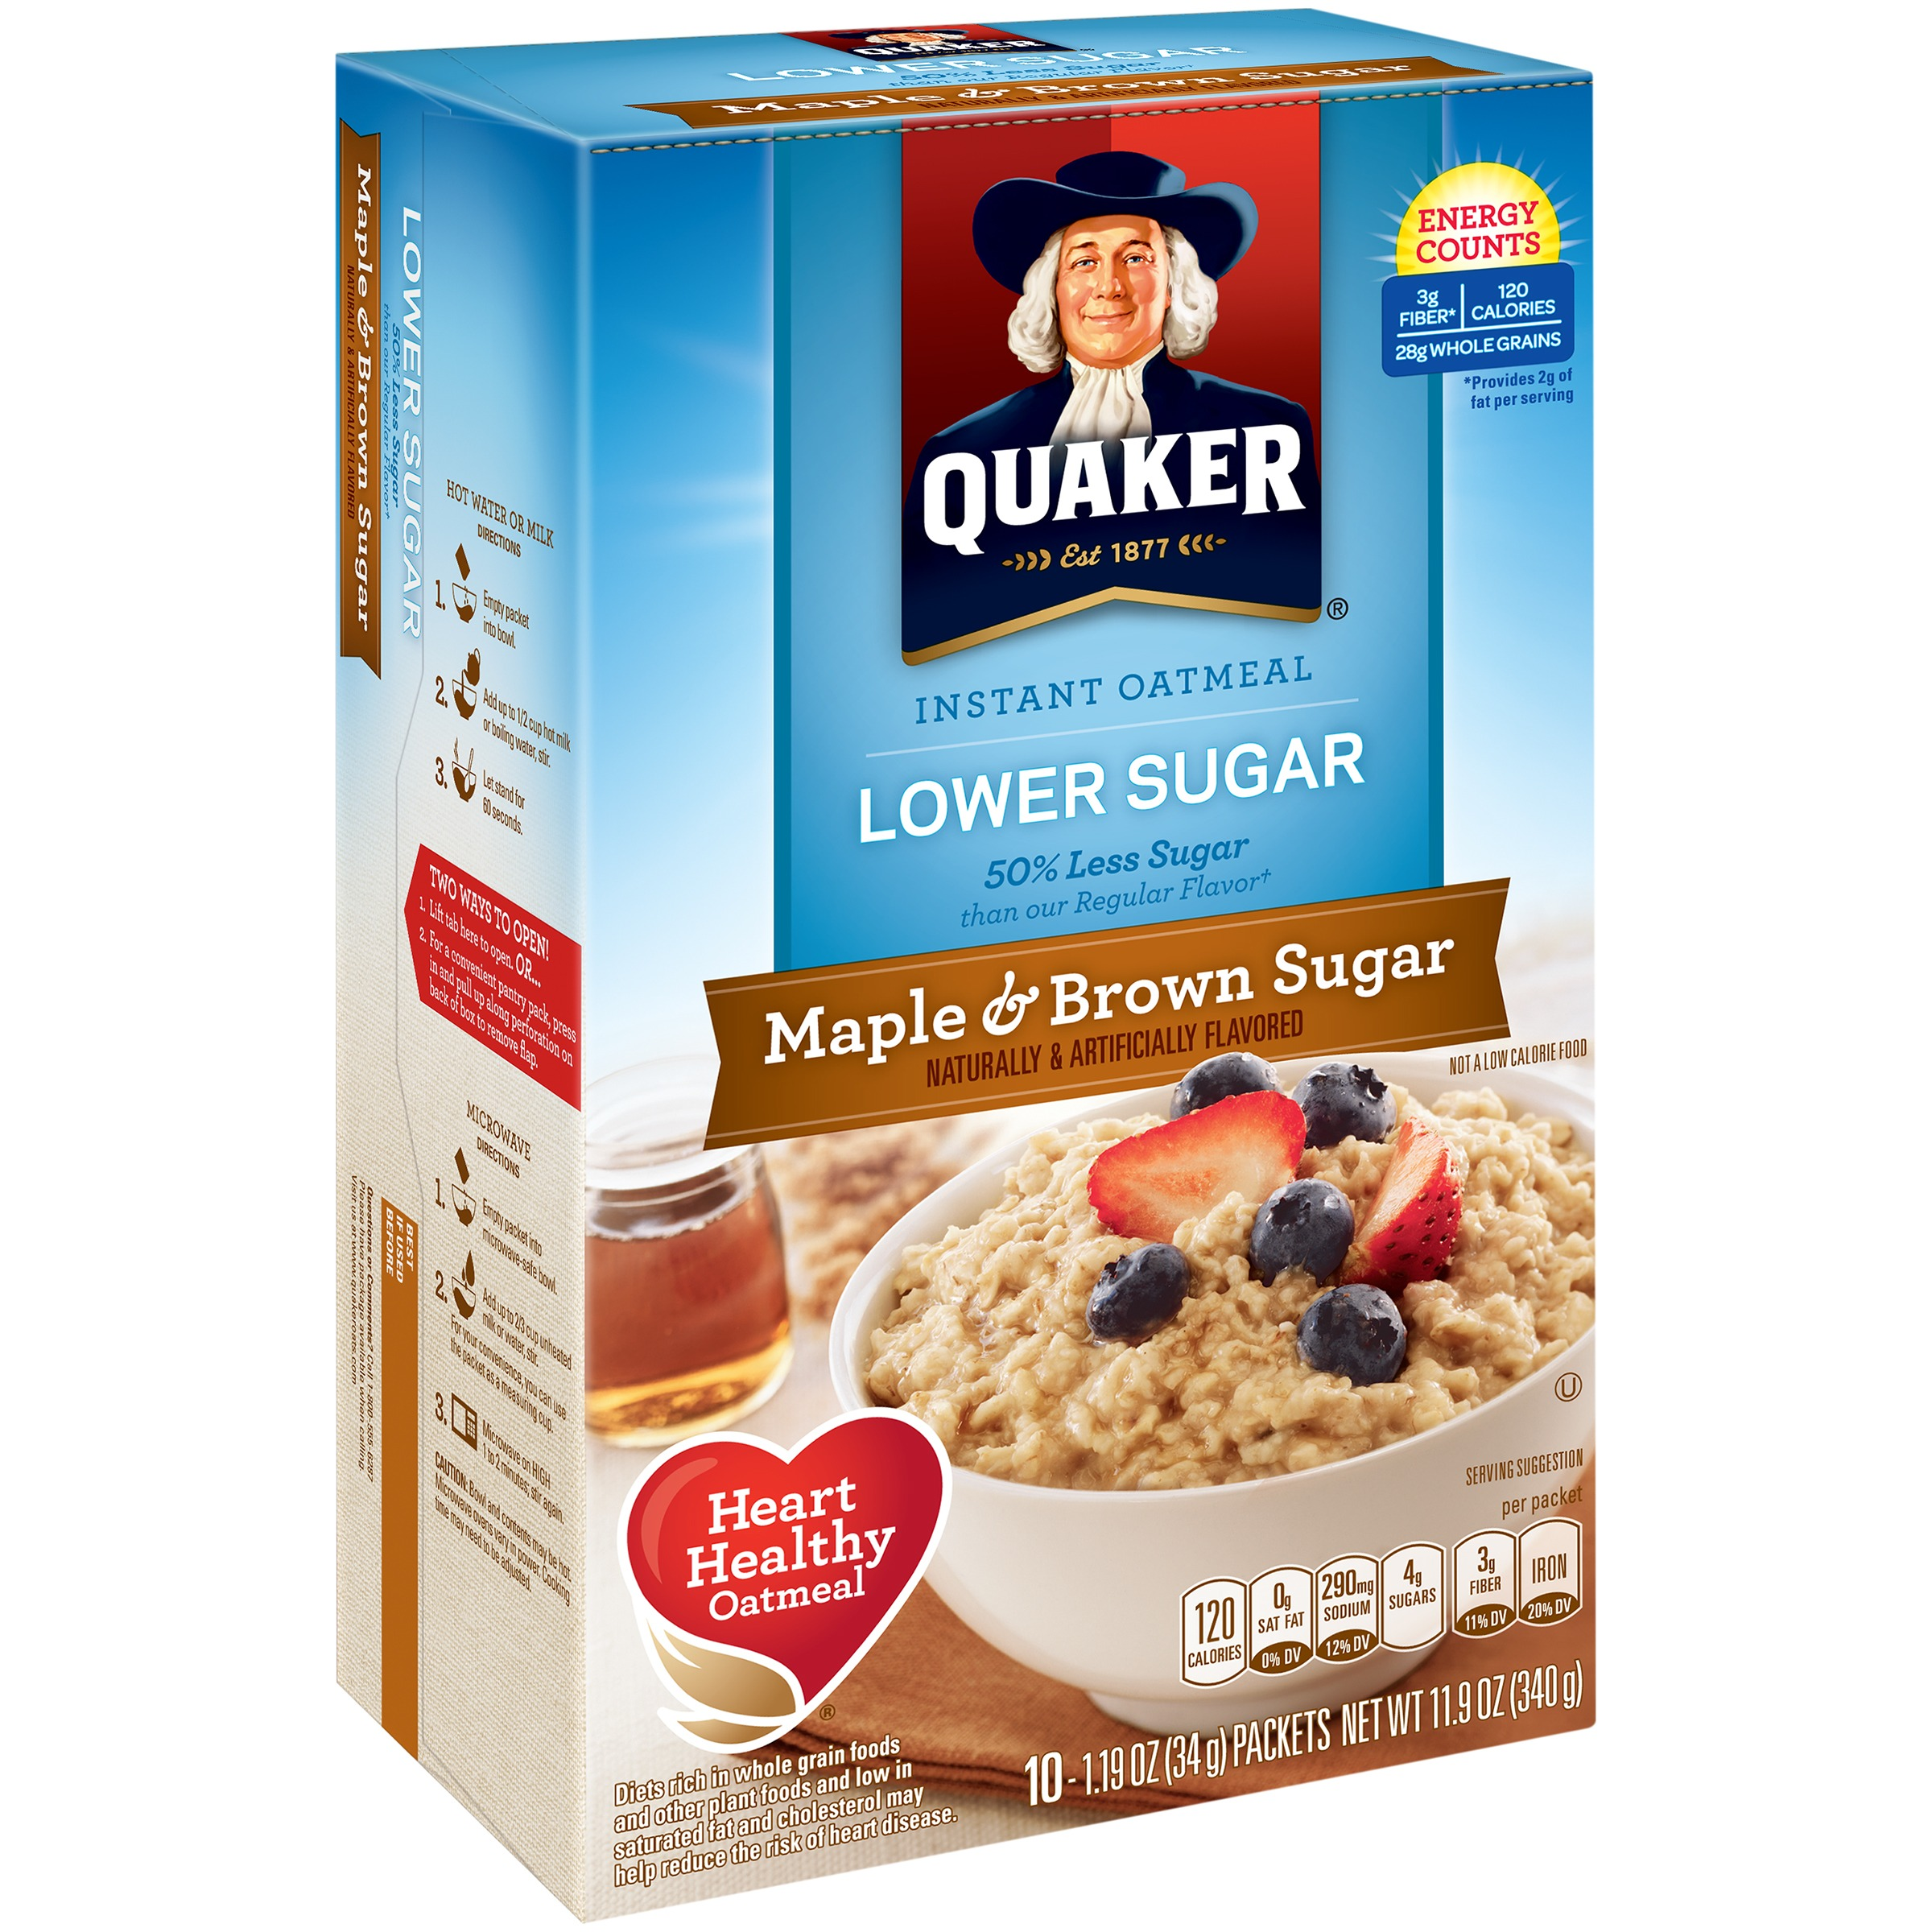 Quaker Instant Oatmeal, Lower Sugar Maple & Brown Sugar, 10 Count